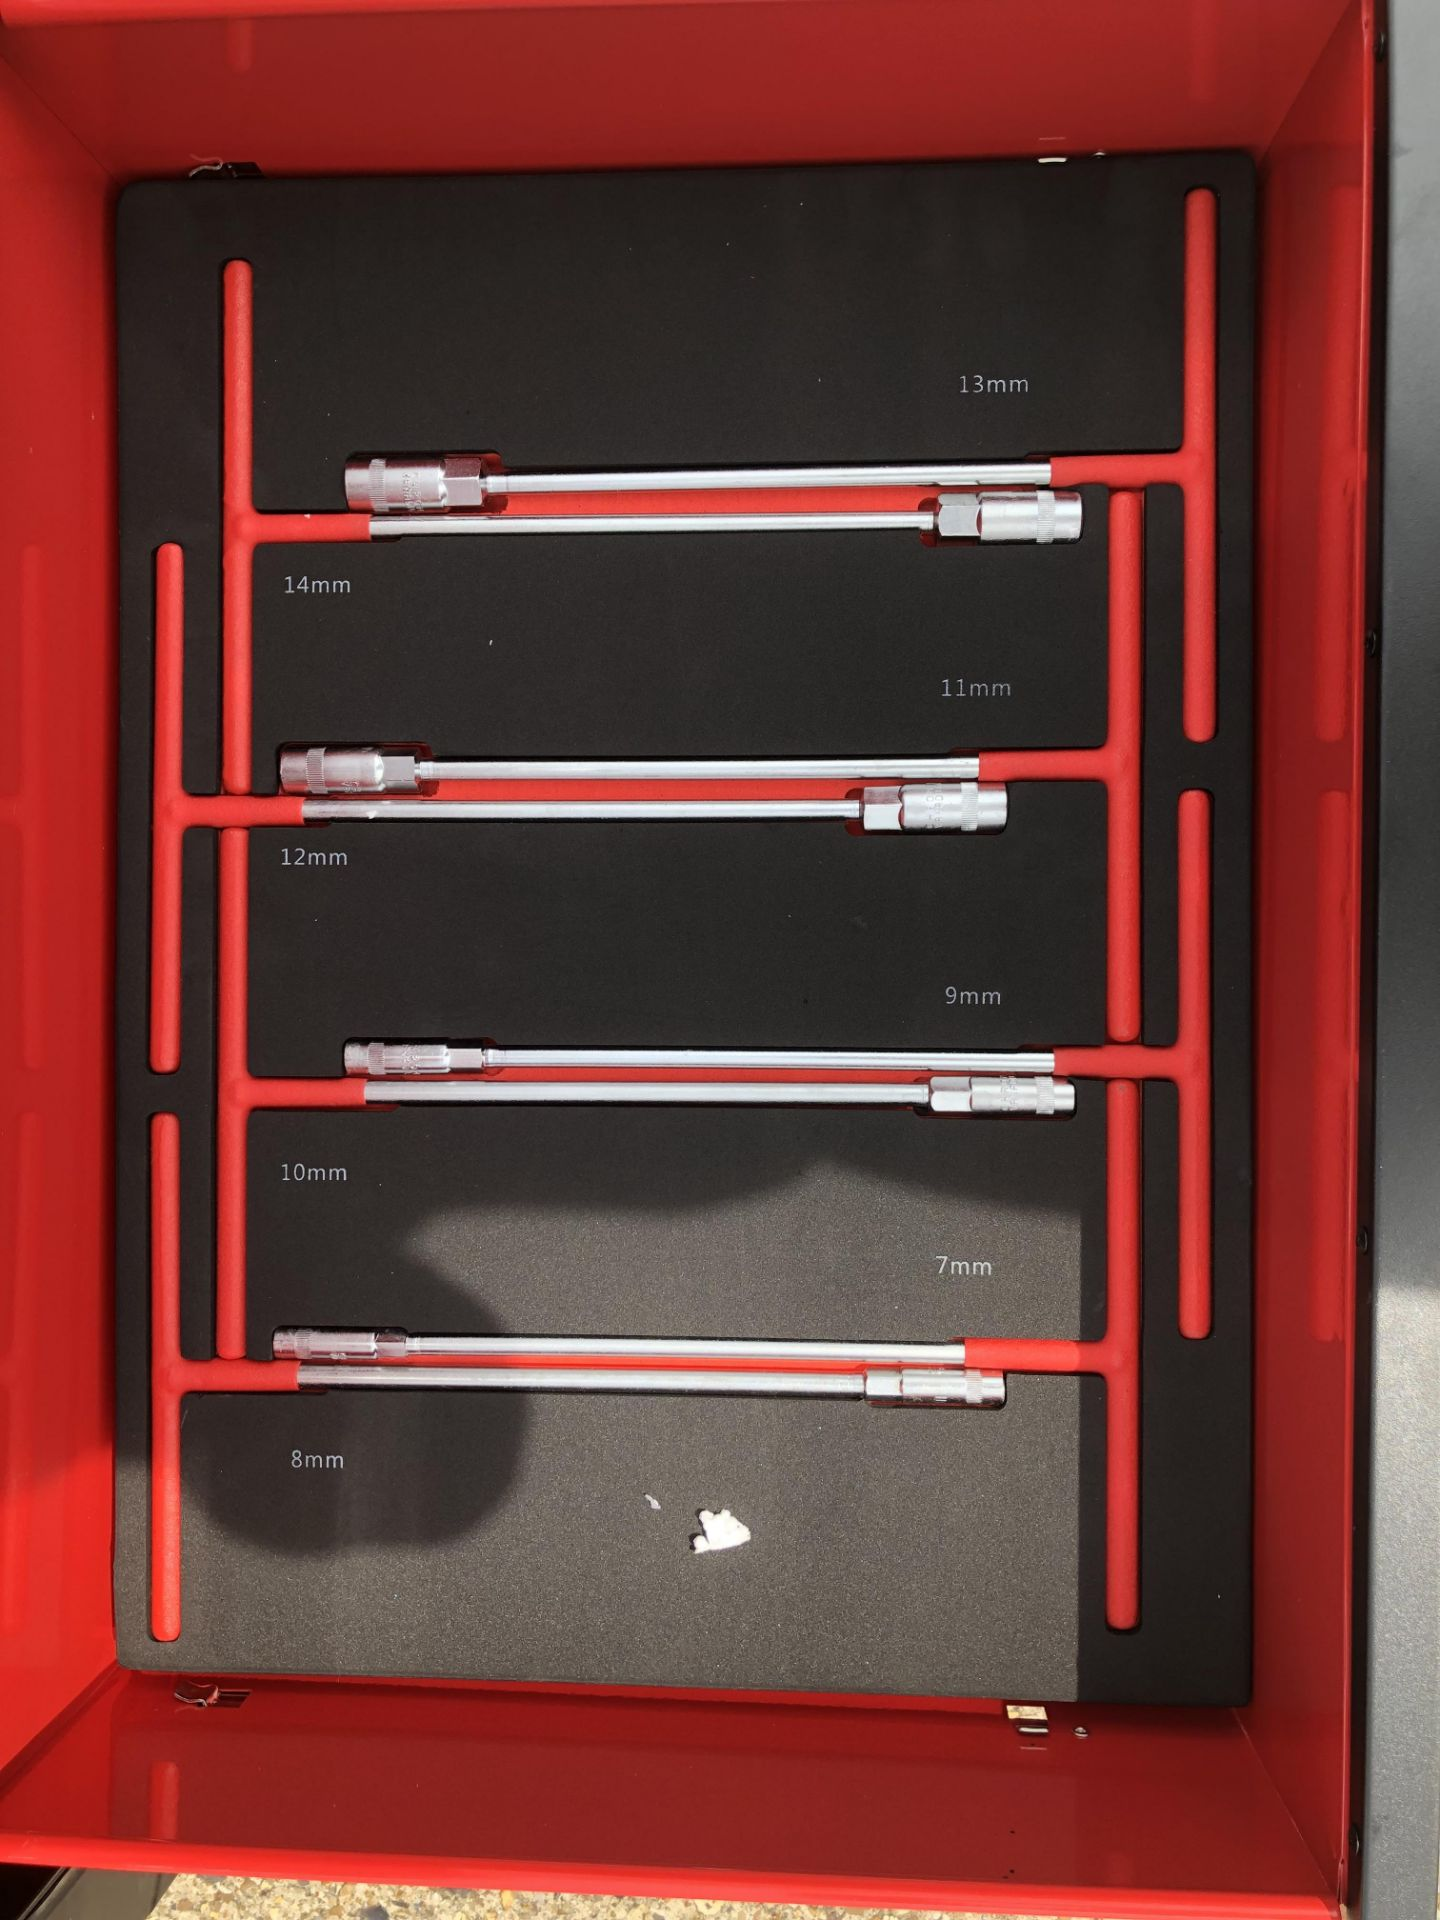 Lot 32167 - V Brand New Professional Locking Garage Tool Trolley/Cabinet (Red/Blue) with Metal Top and 7 Drawers